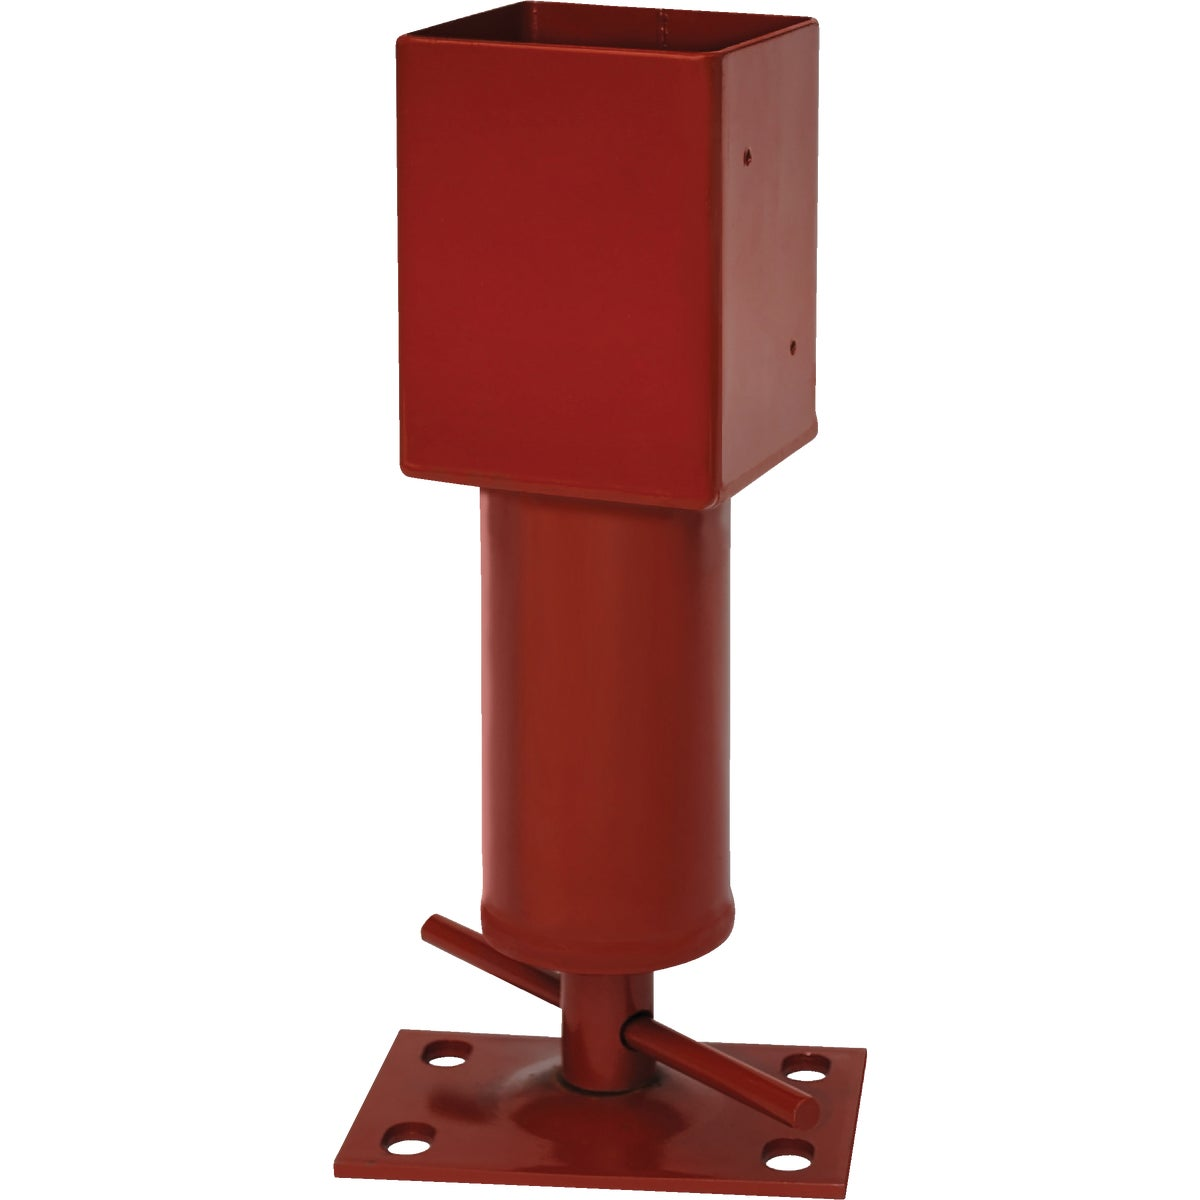 TEMPORARY SHORING JACK - S301944PC by Akron Products